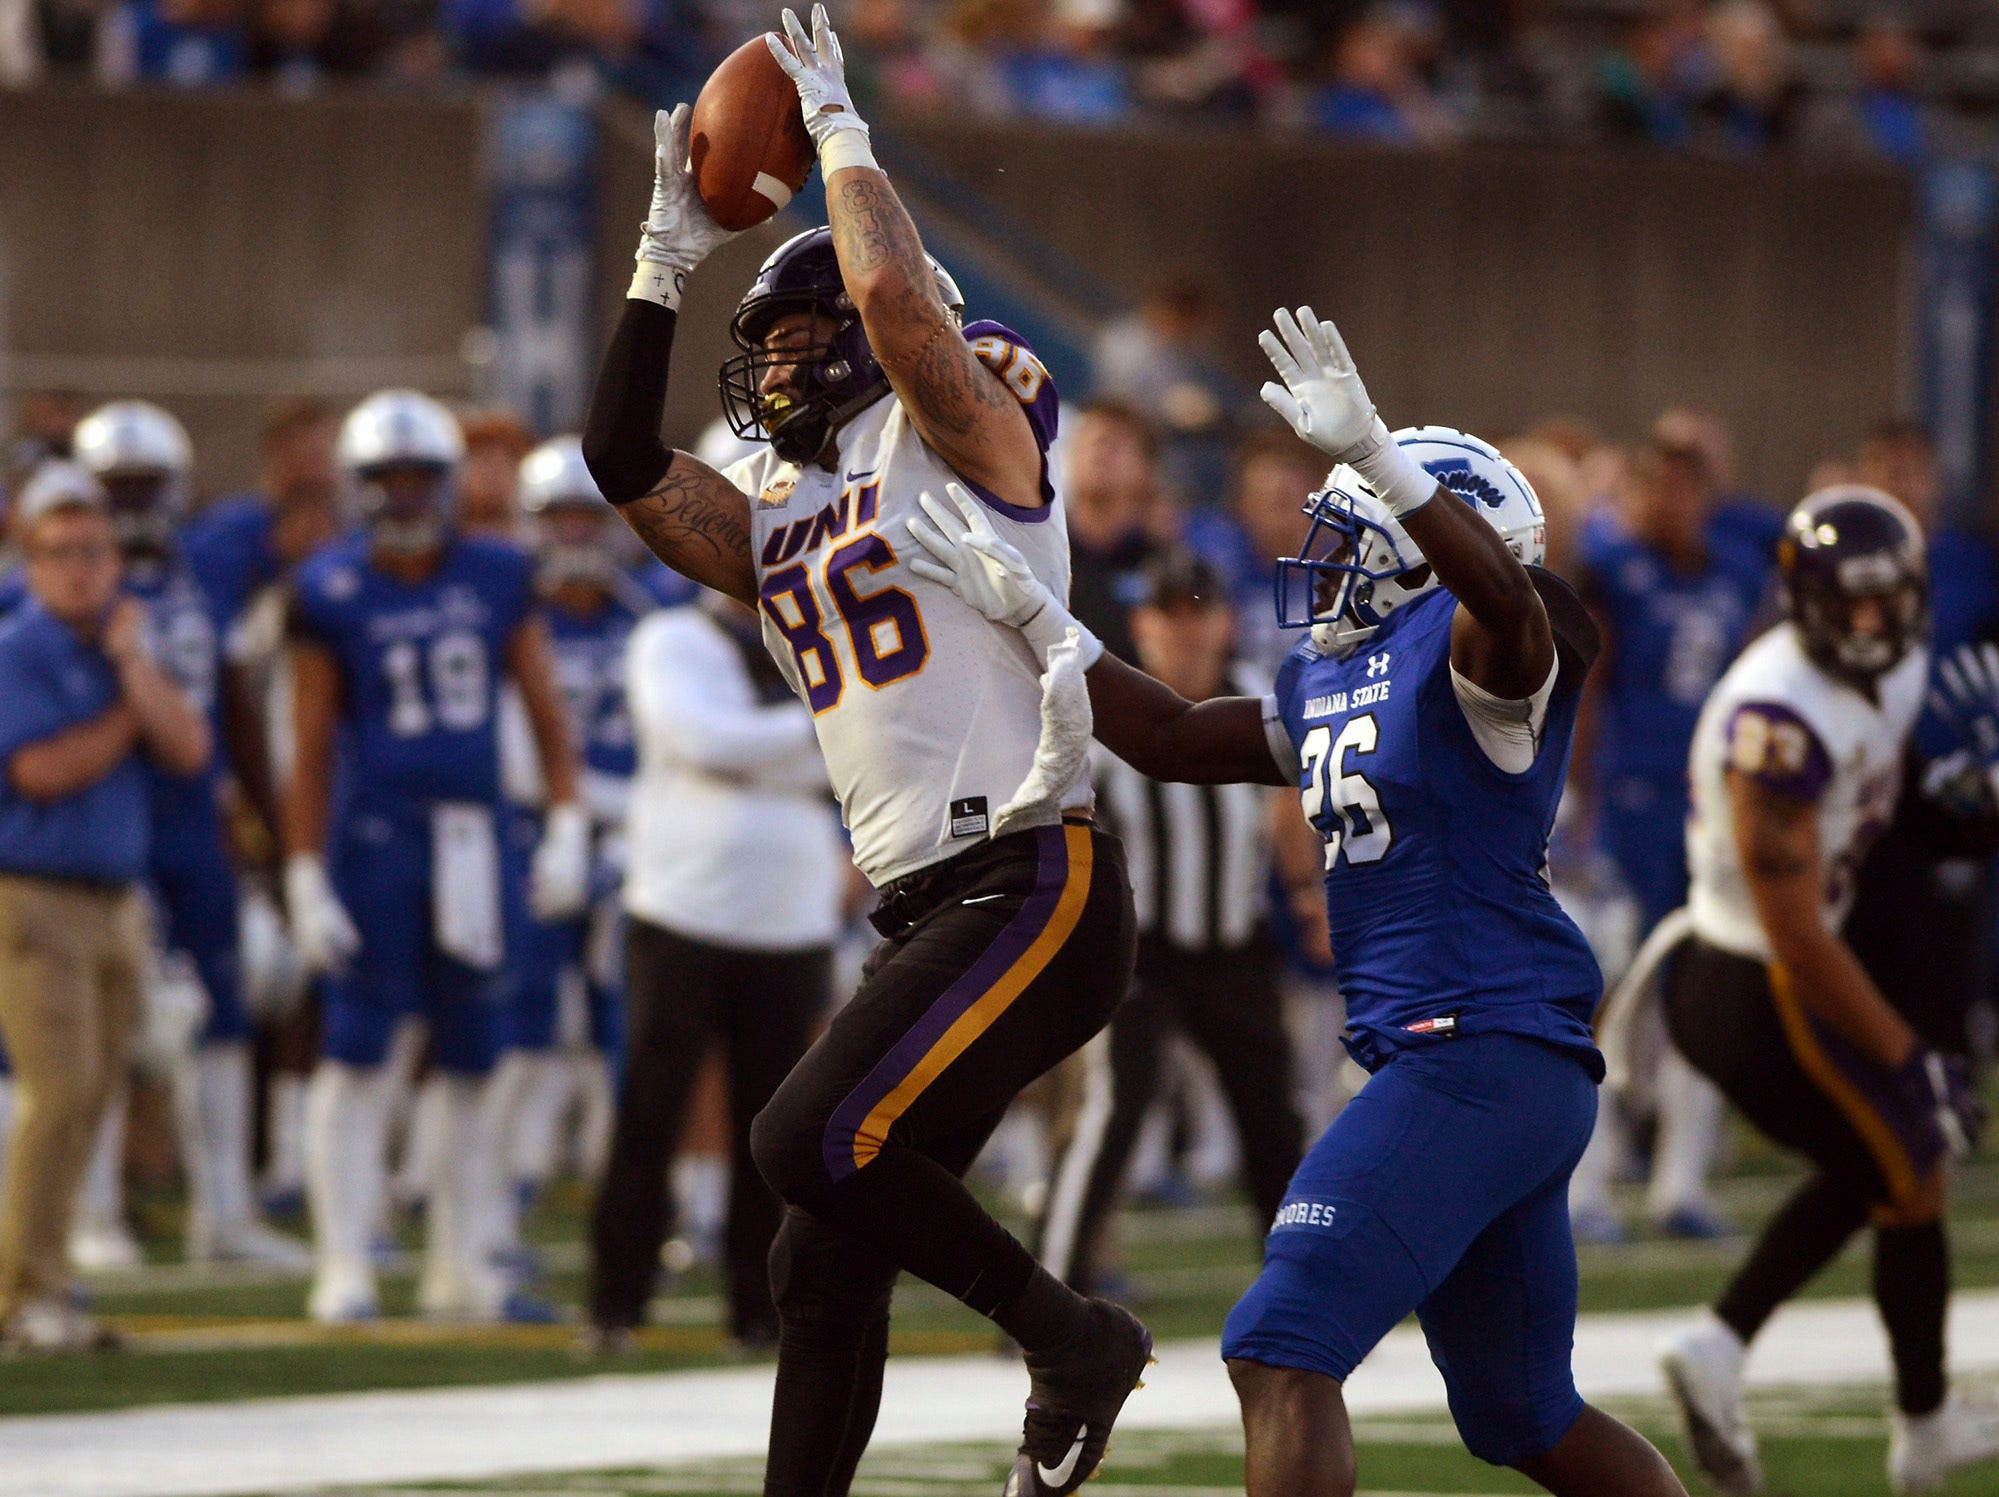 Northern Iowa's Briley Moore catches a pass over Indiana State's Jamal Jones during the first half of an NCAA college football game Thursday, Sept. 27, 2018, in Terre Haute, Ind.